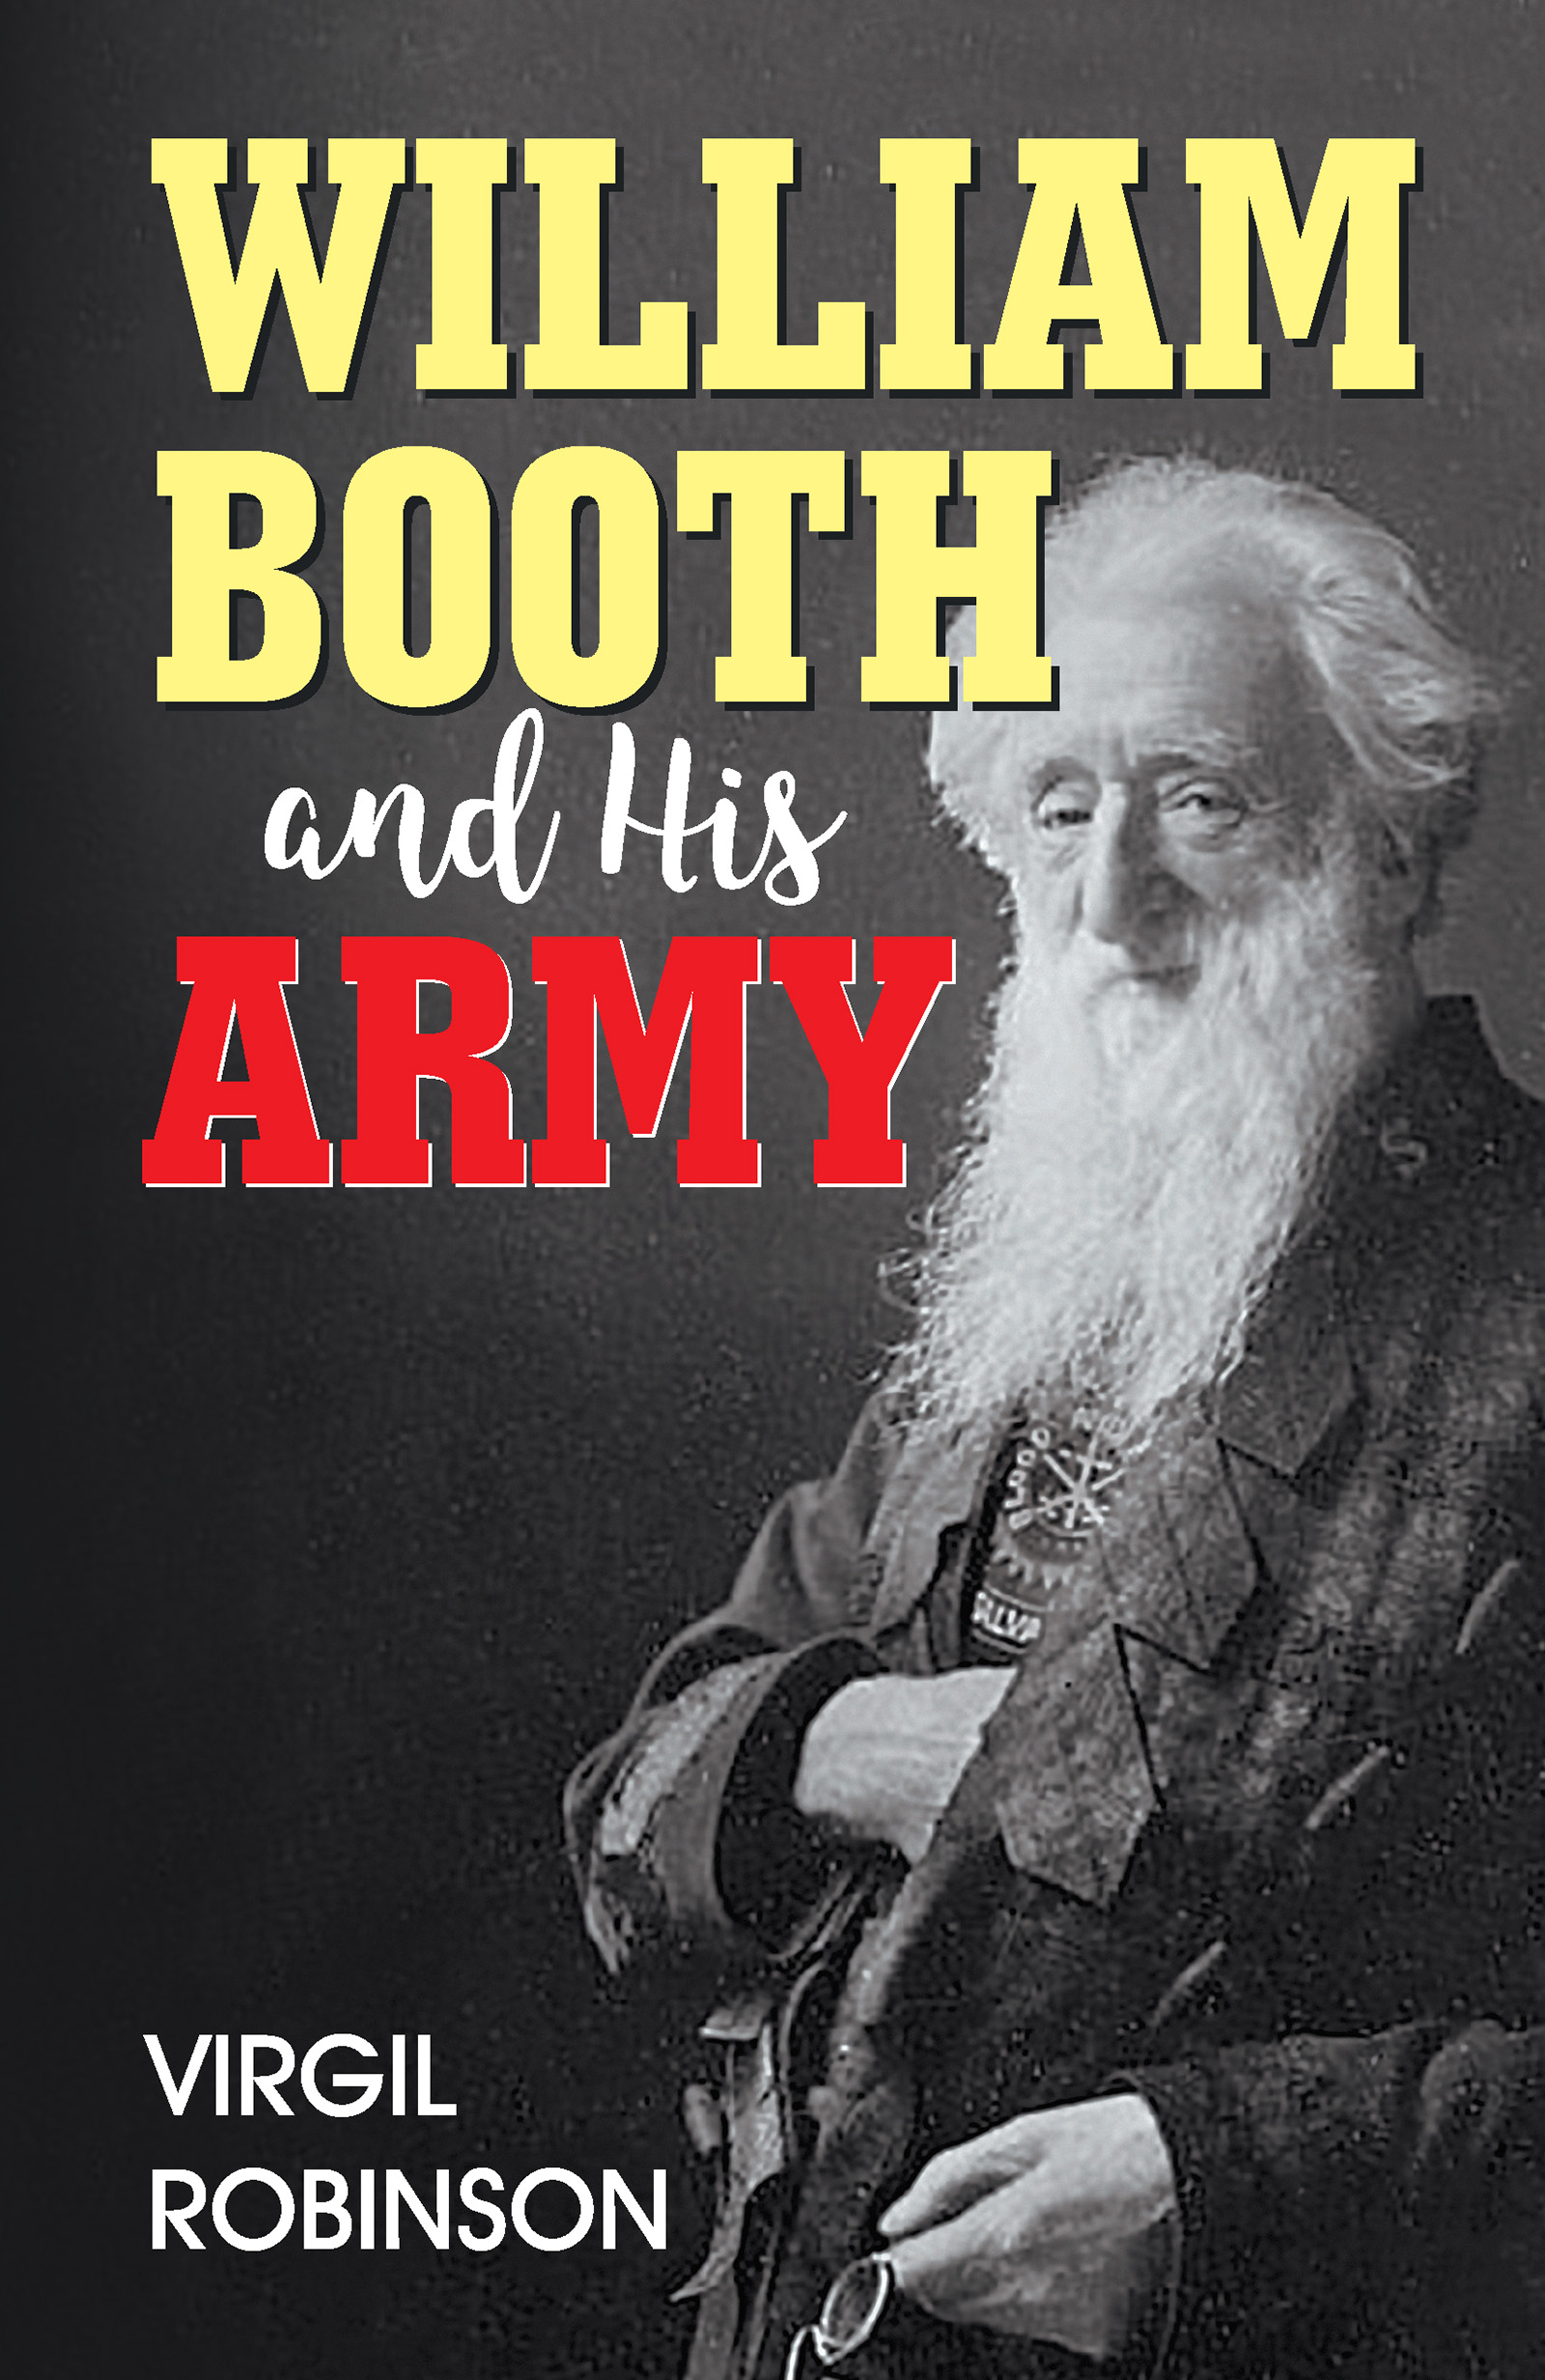 William Booth and His Army